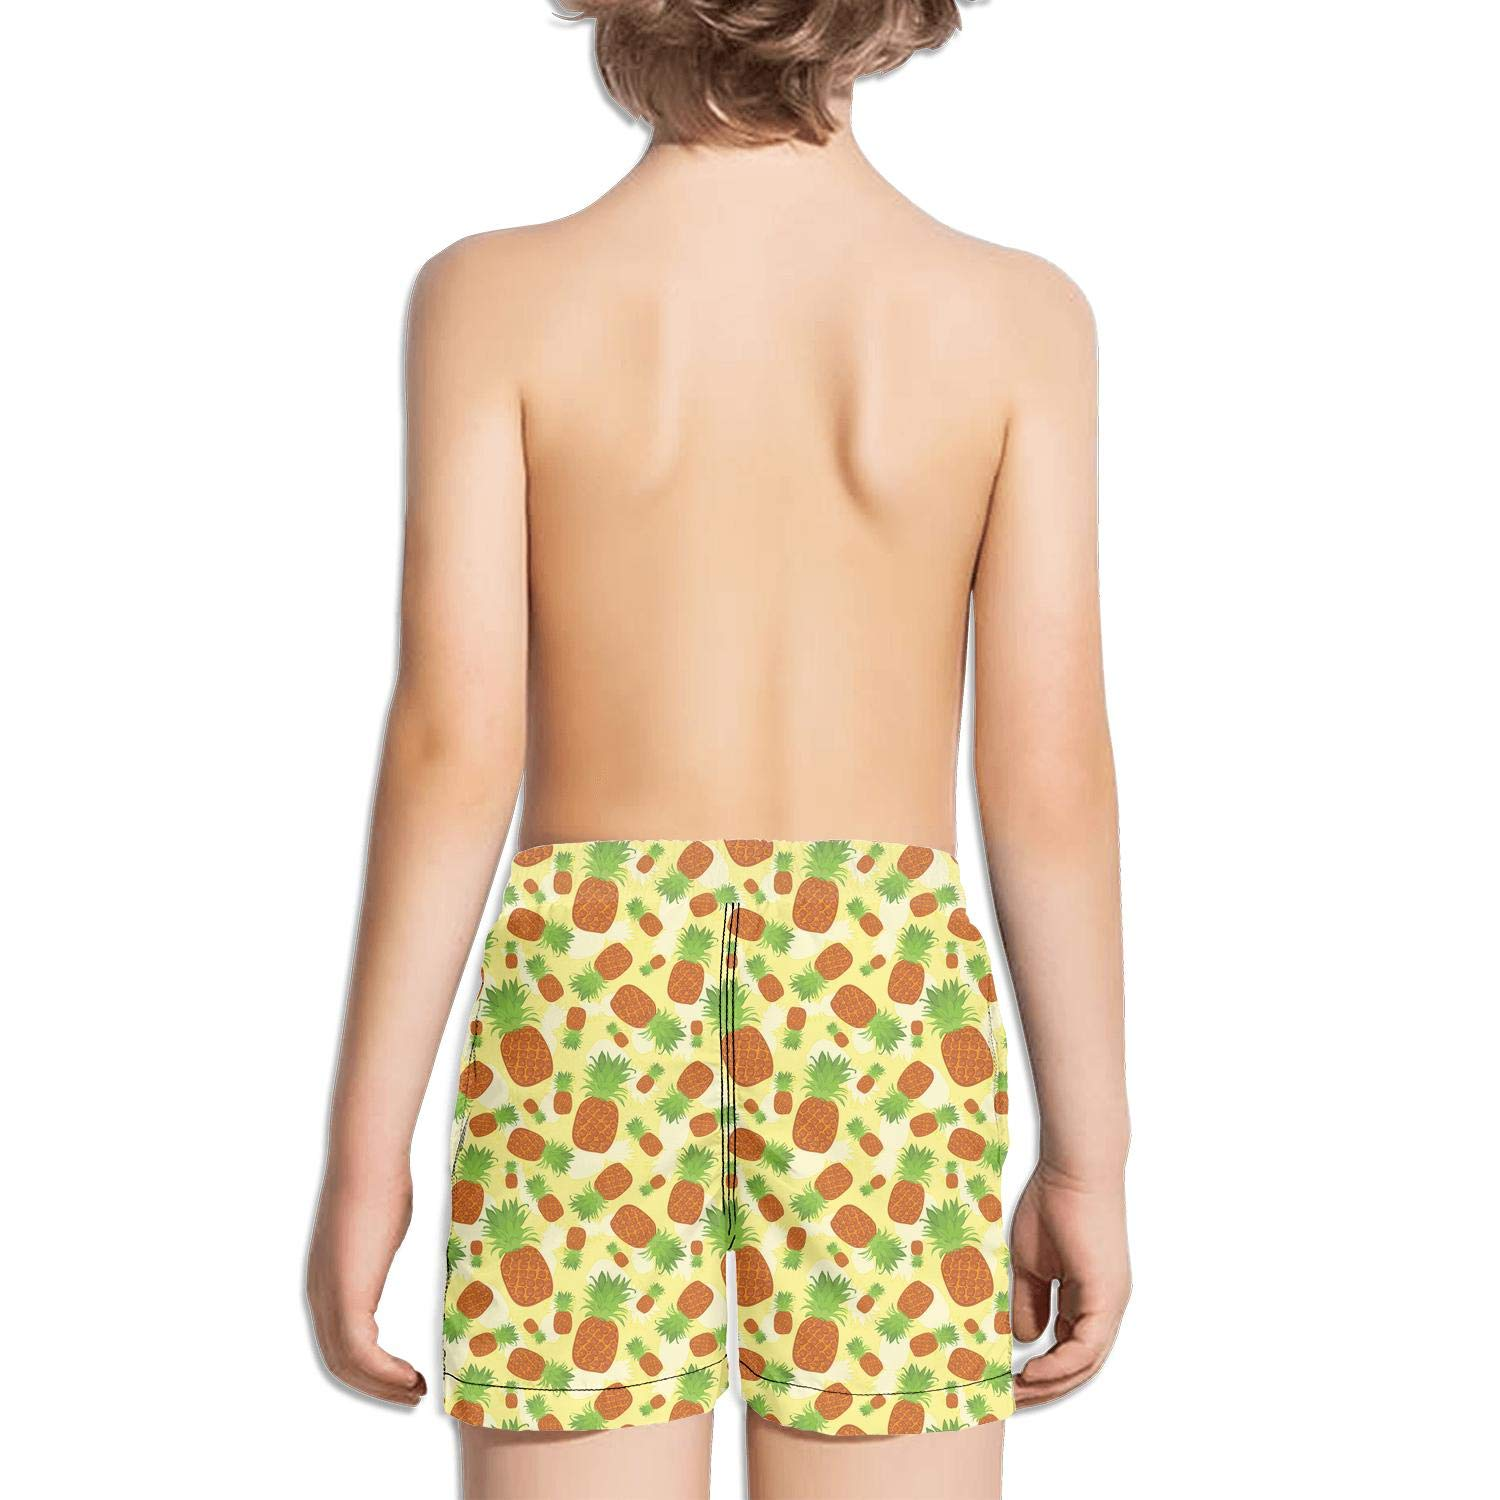 NAIT.2 Shorts Swimming Tucks for Kid Quick Dry Solid Board Core Swimming Tucks Reflex Printed Tropical Fruit Summer Pineapples